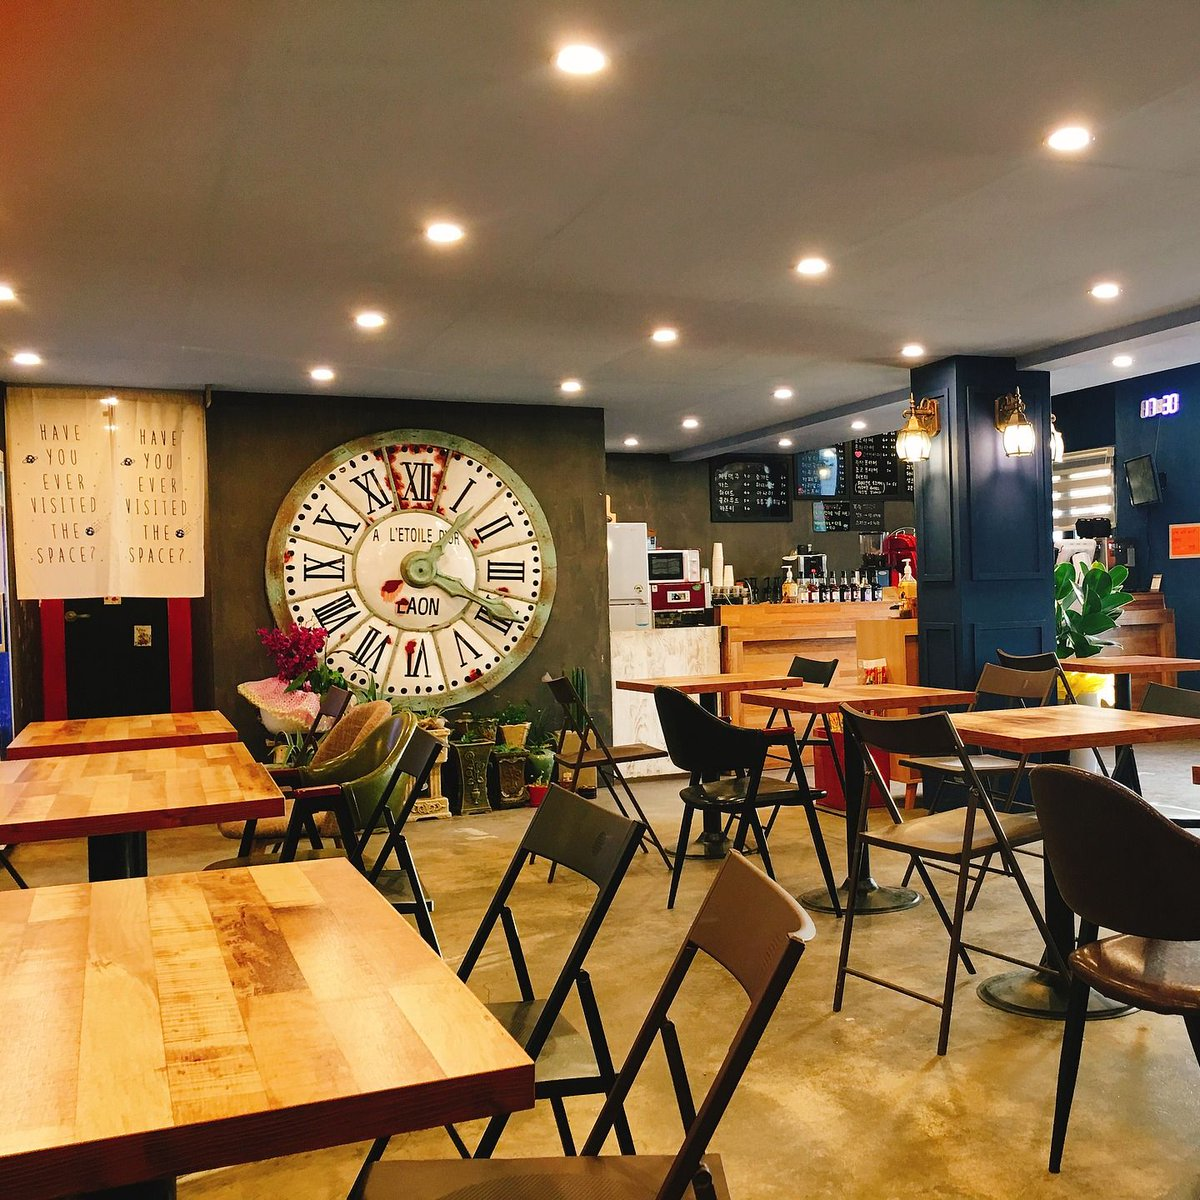 Master3languages On Twitter Coffee Shop At The Jebudo Island Have You Been Here Source Https T Co Z04aanhzzw Learn 15 Ways To Say Hello In Korean Https T Co 01tzhulqfx Korea Southkorea Corea Coreadelsur Jebudo Jeburi